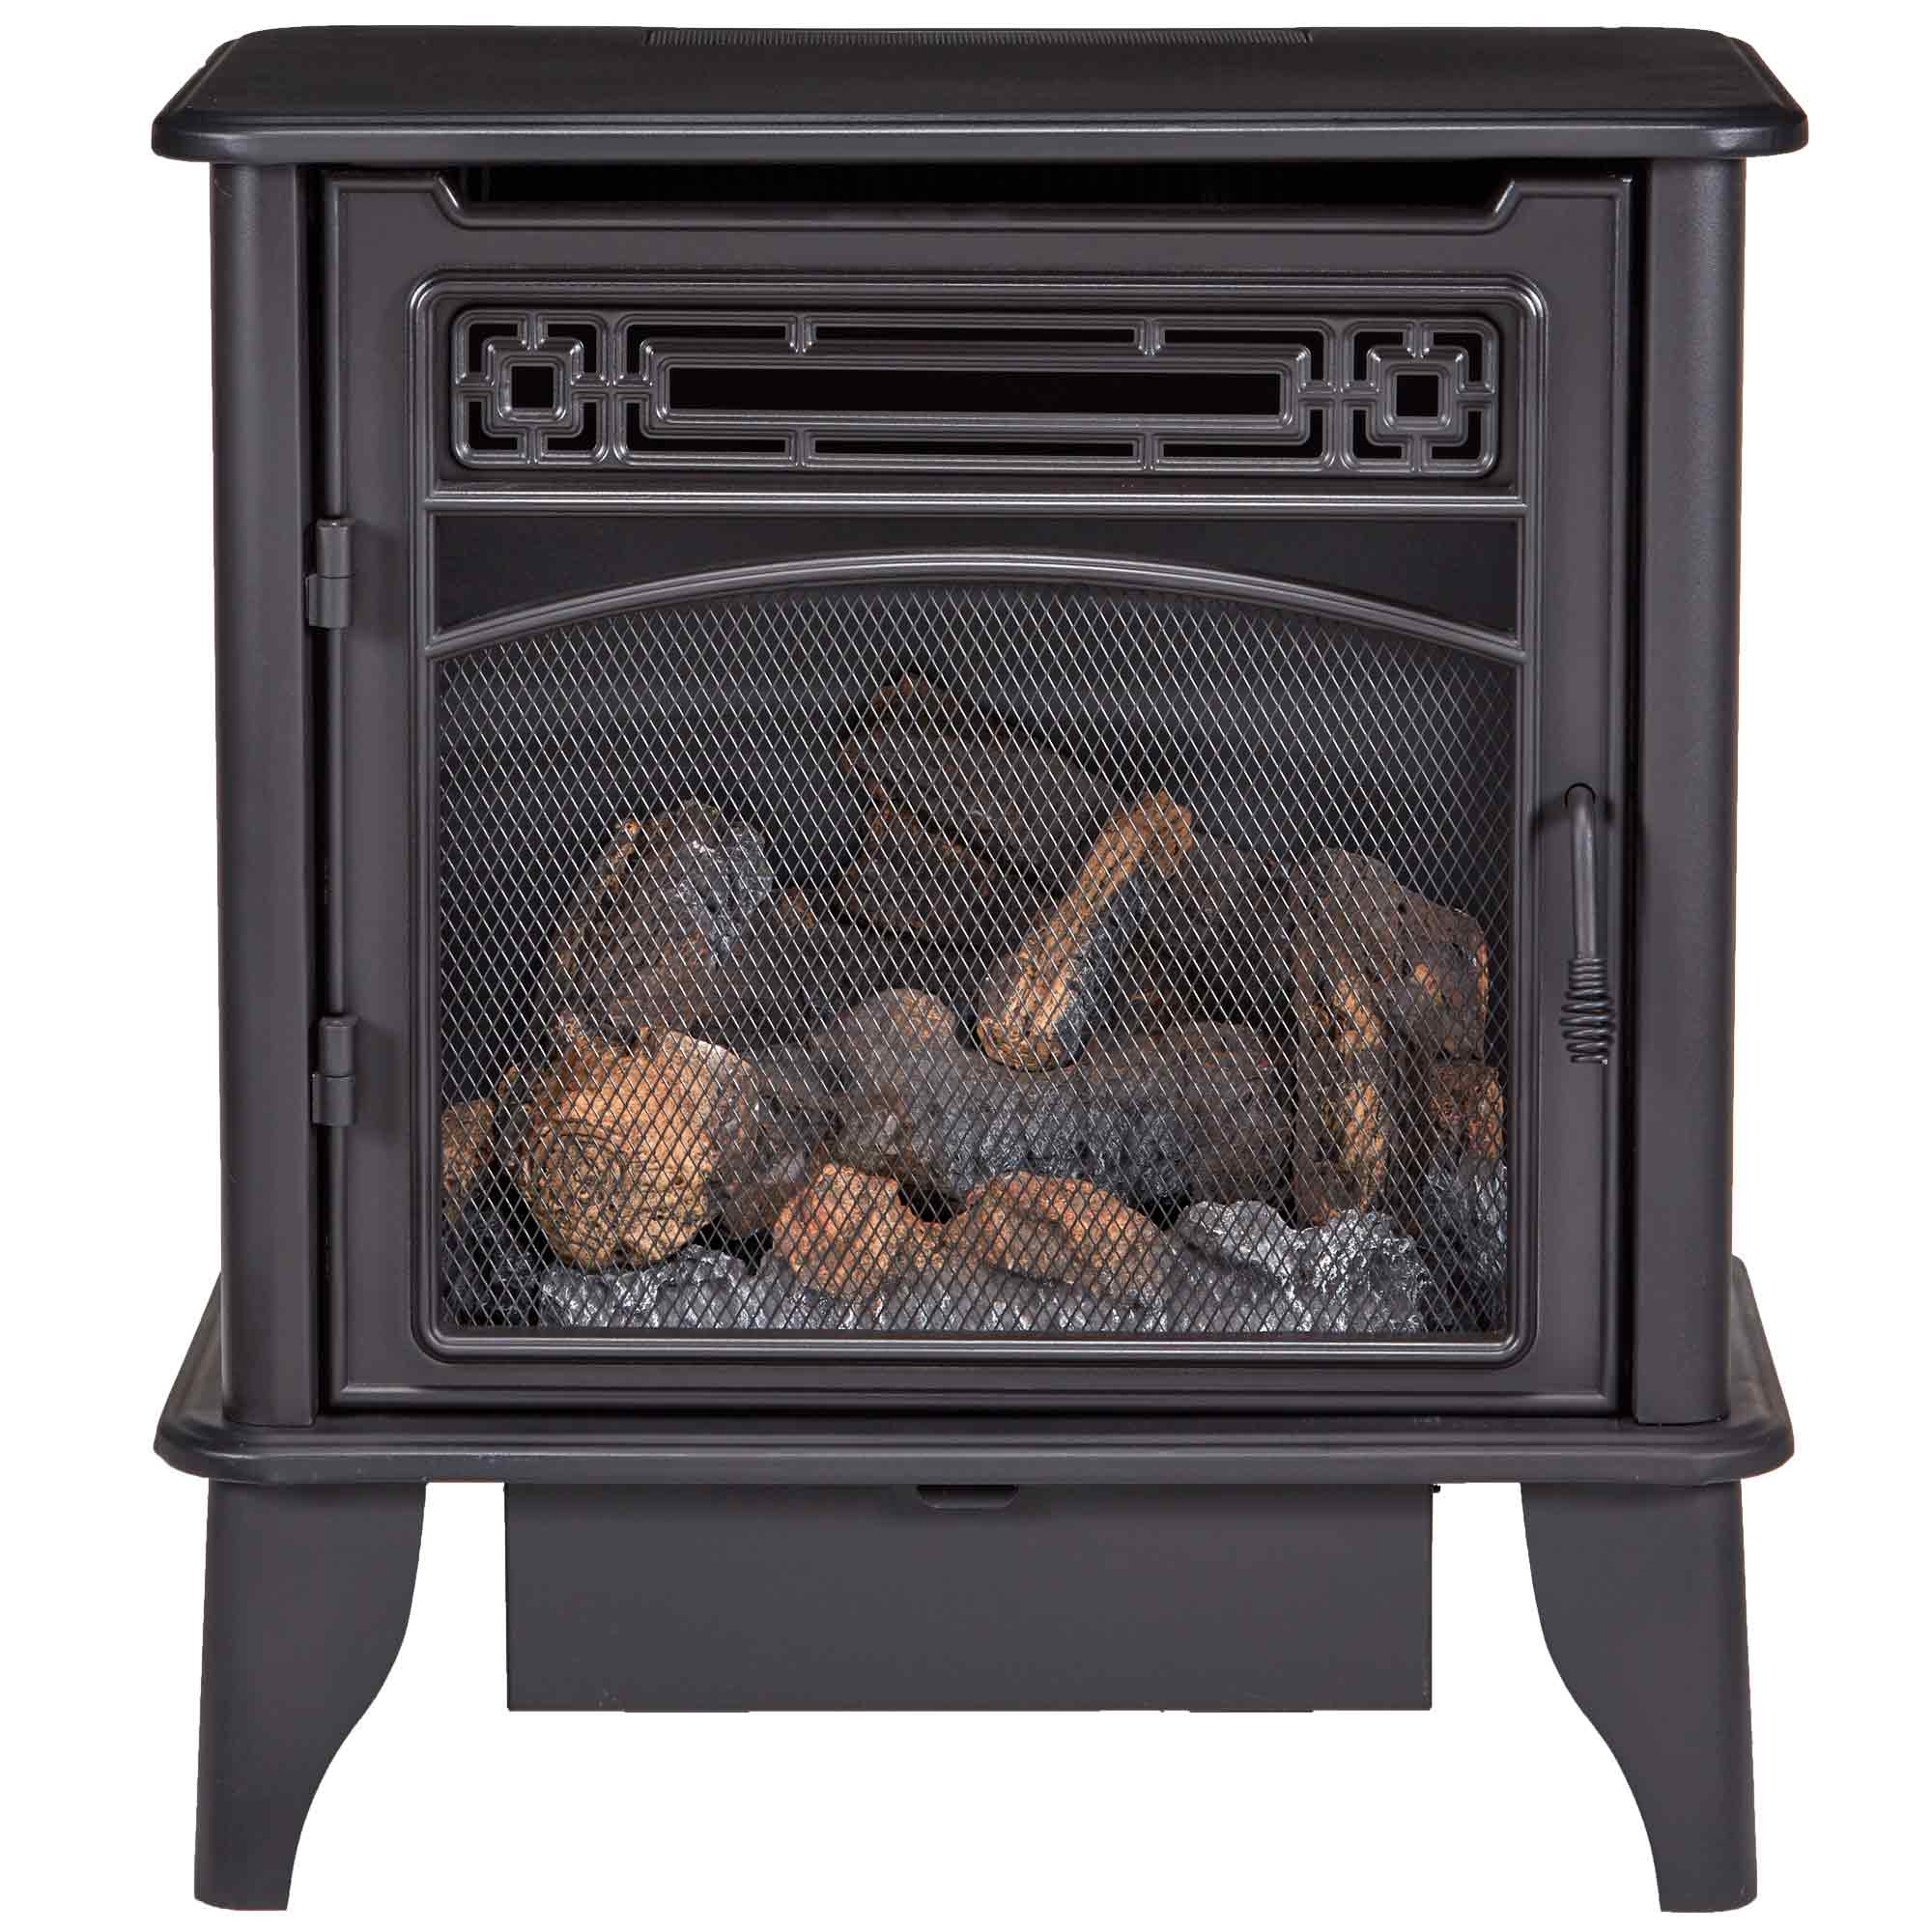 Gas Stove 3 Sided Black Dual Fuel With Remote Control